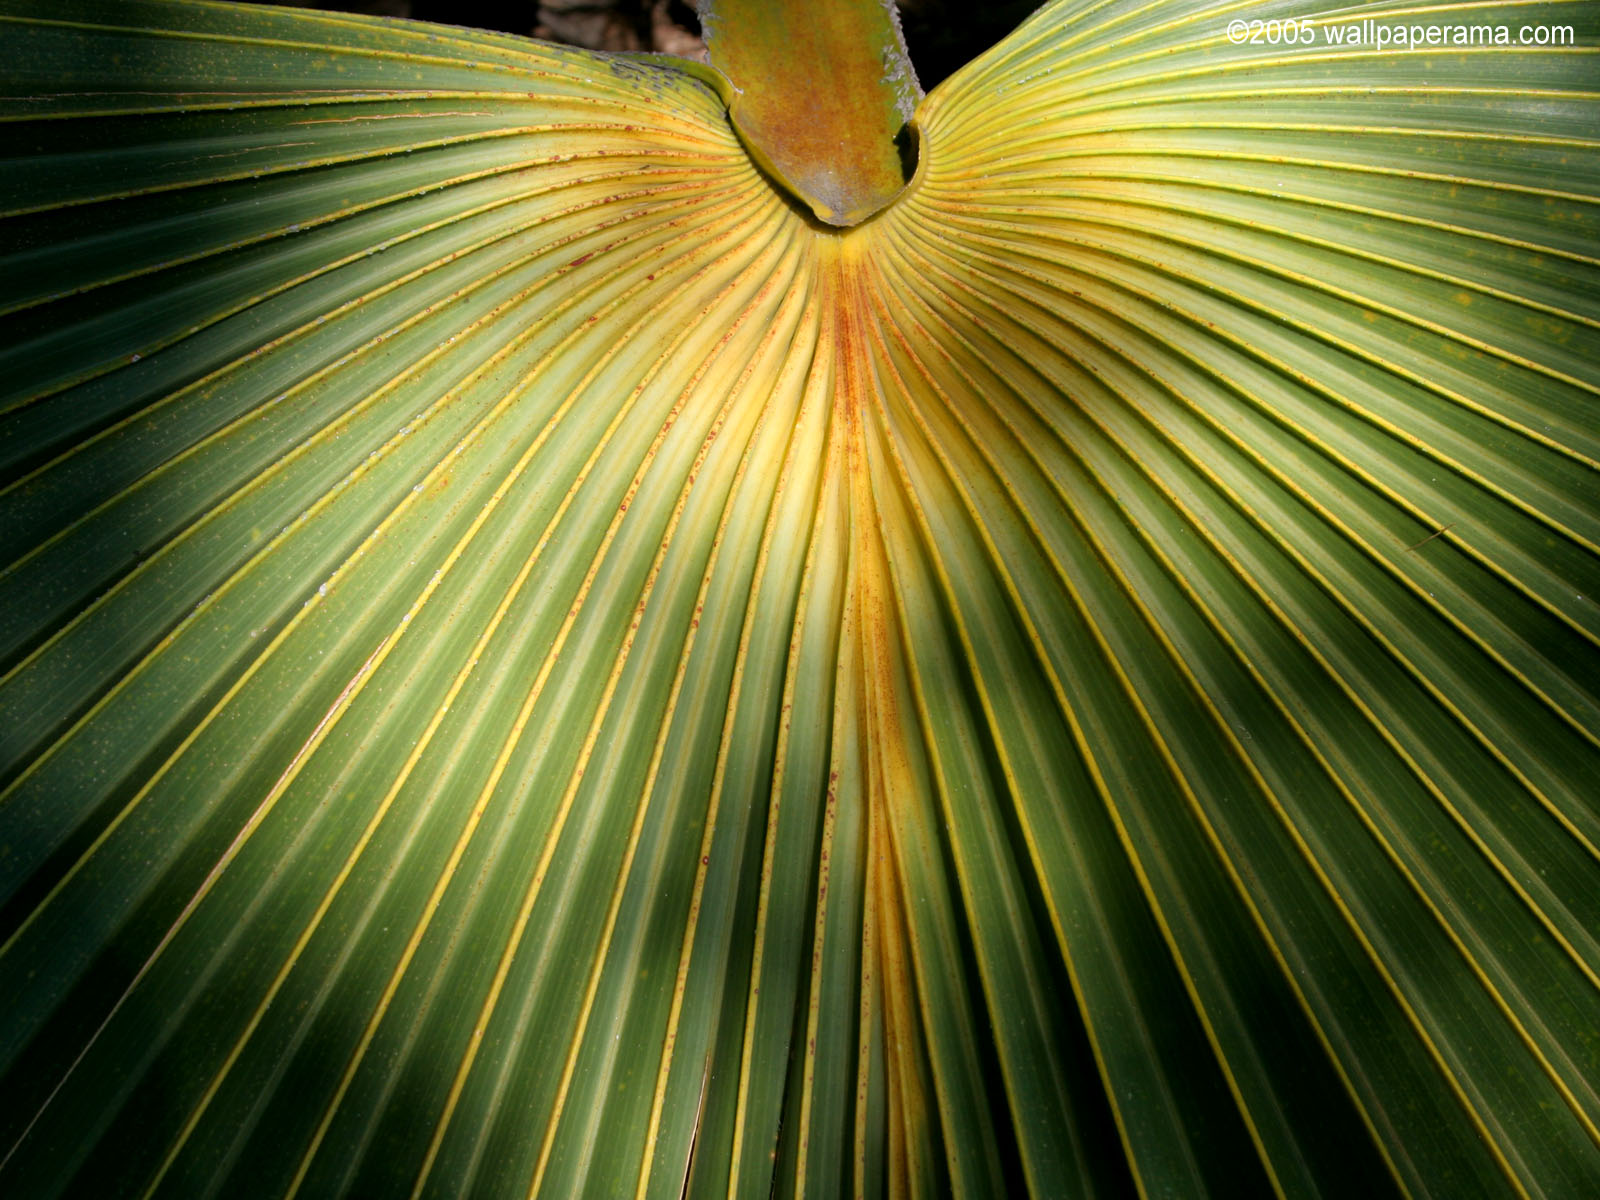 Palm Leaf Wallpaper HD Backgrounds Images Pictures 1600x1200